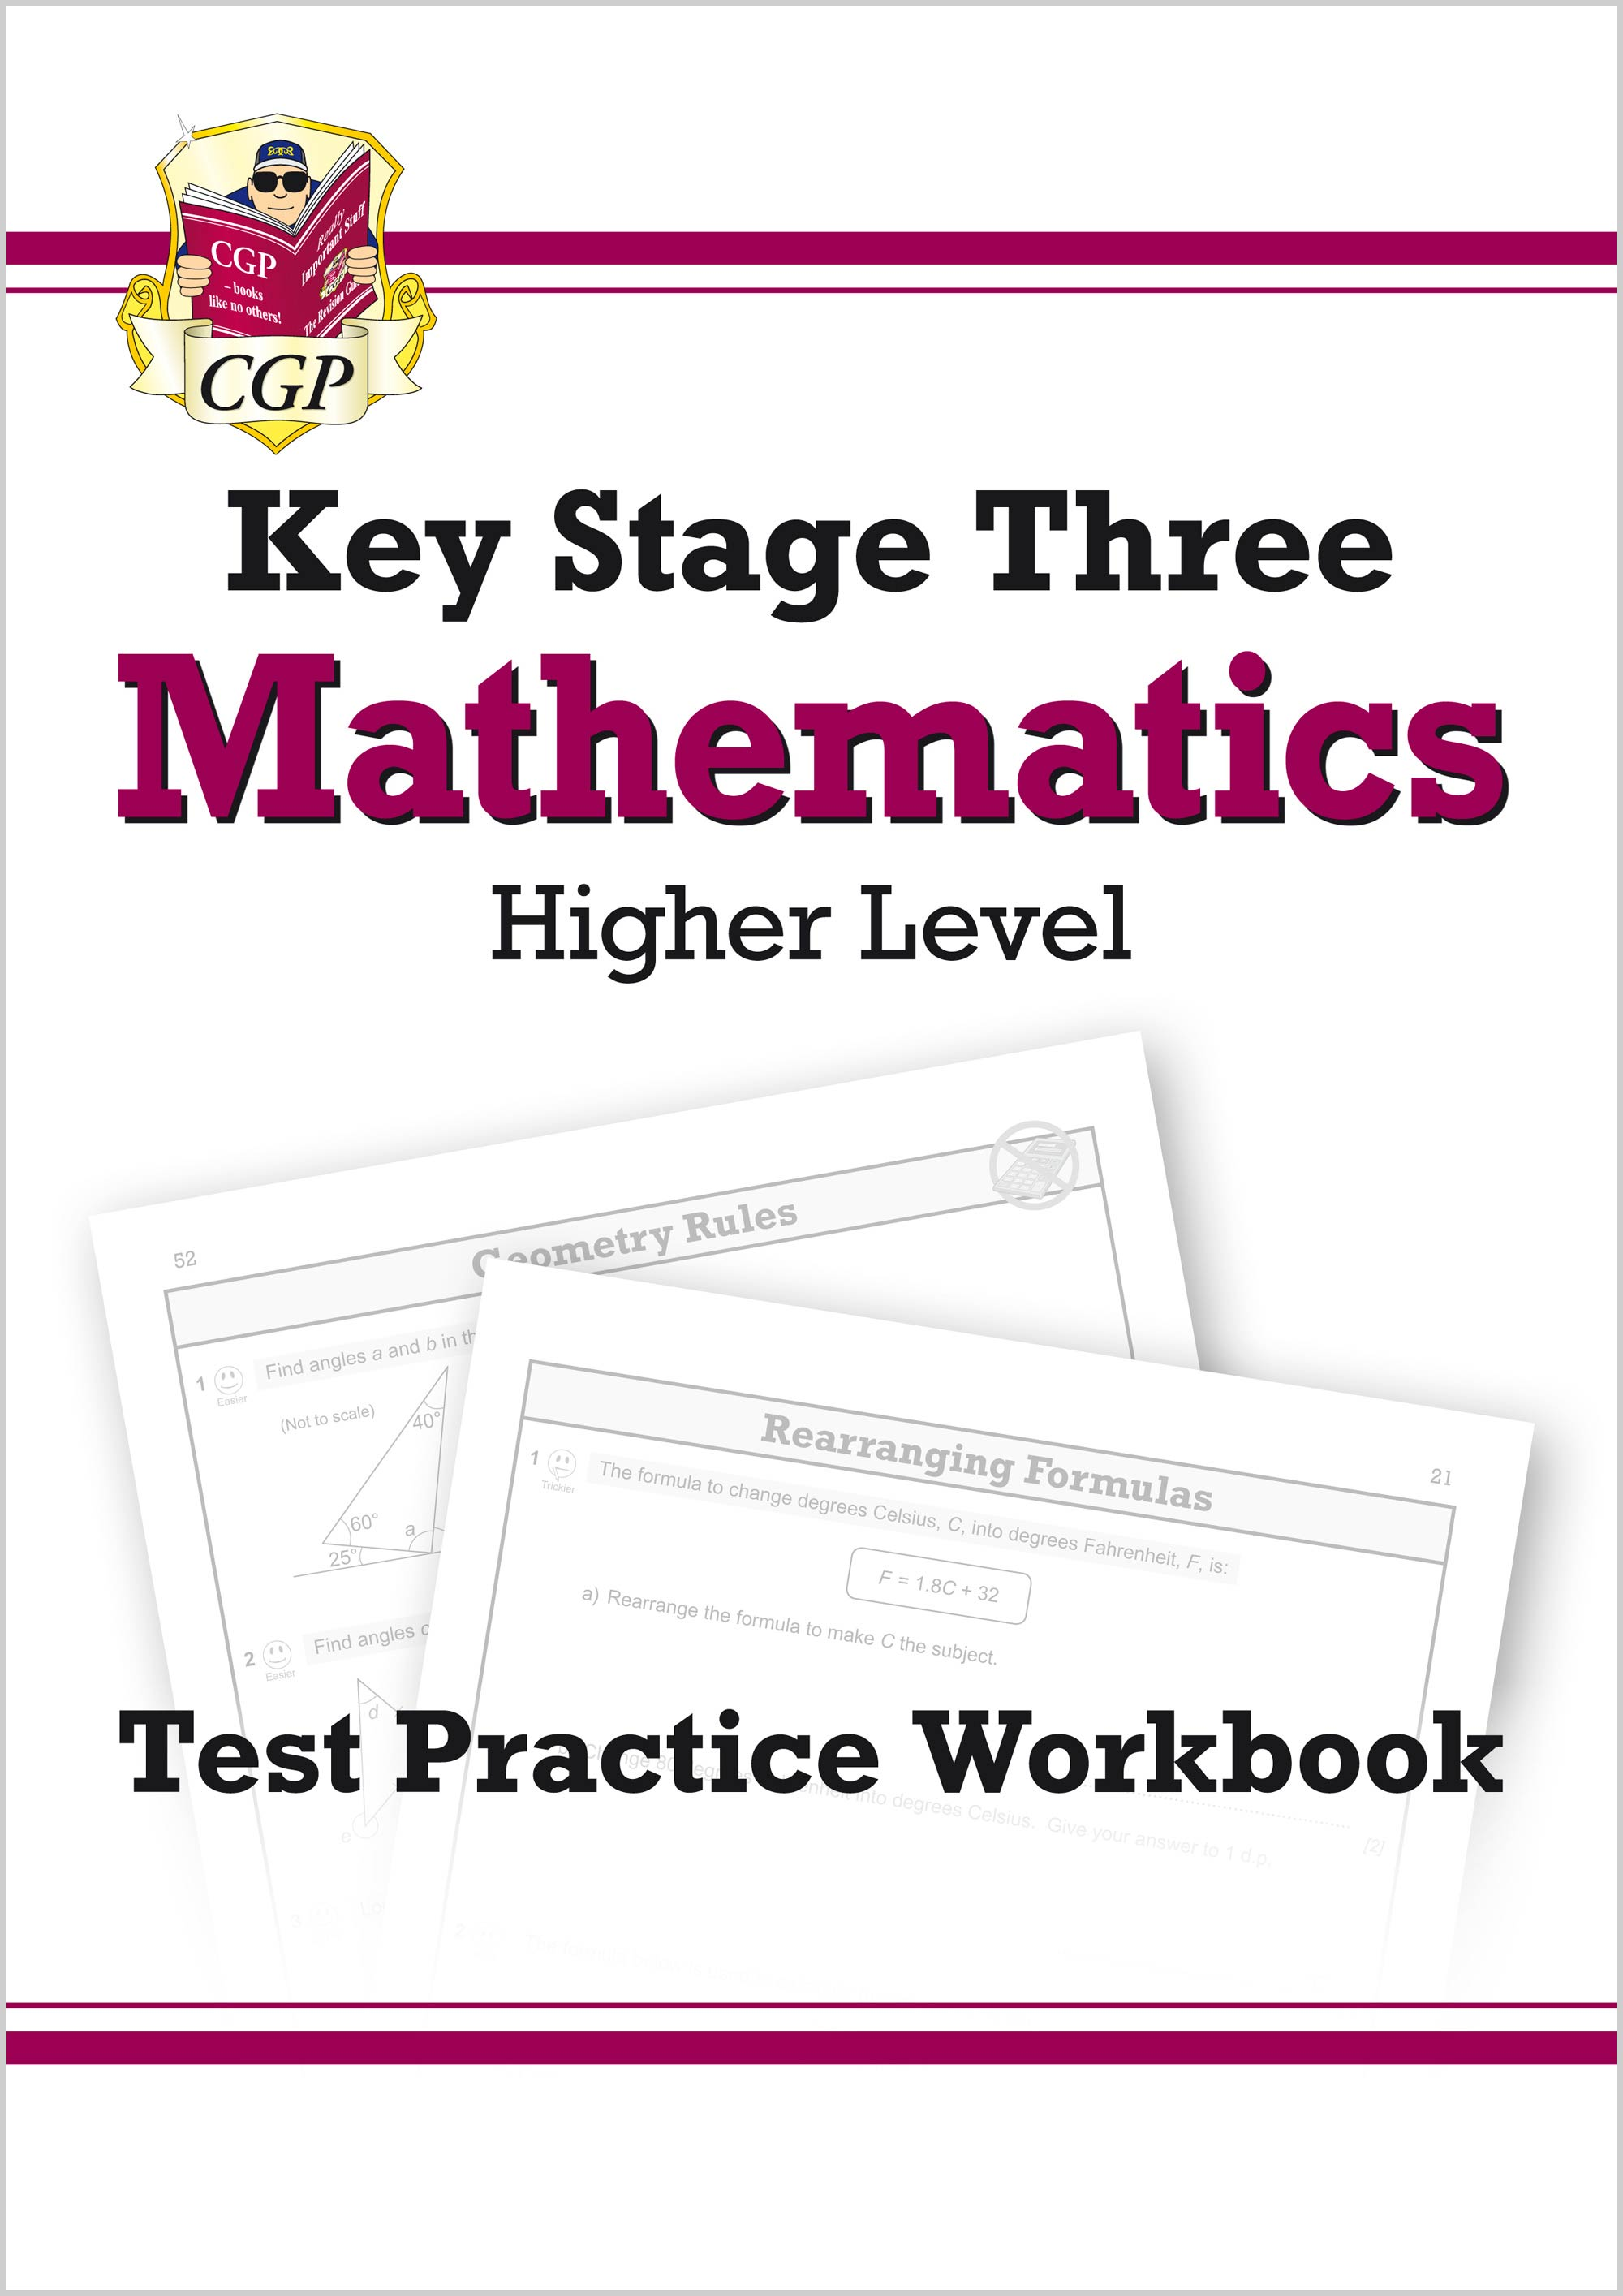 MHQ32 - KS3 Maths Test Practice Workbook - Higher